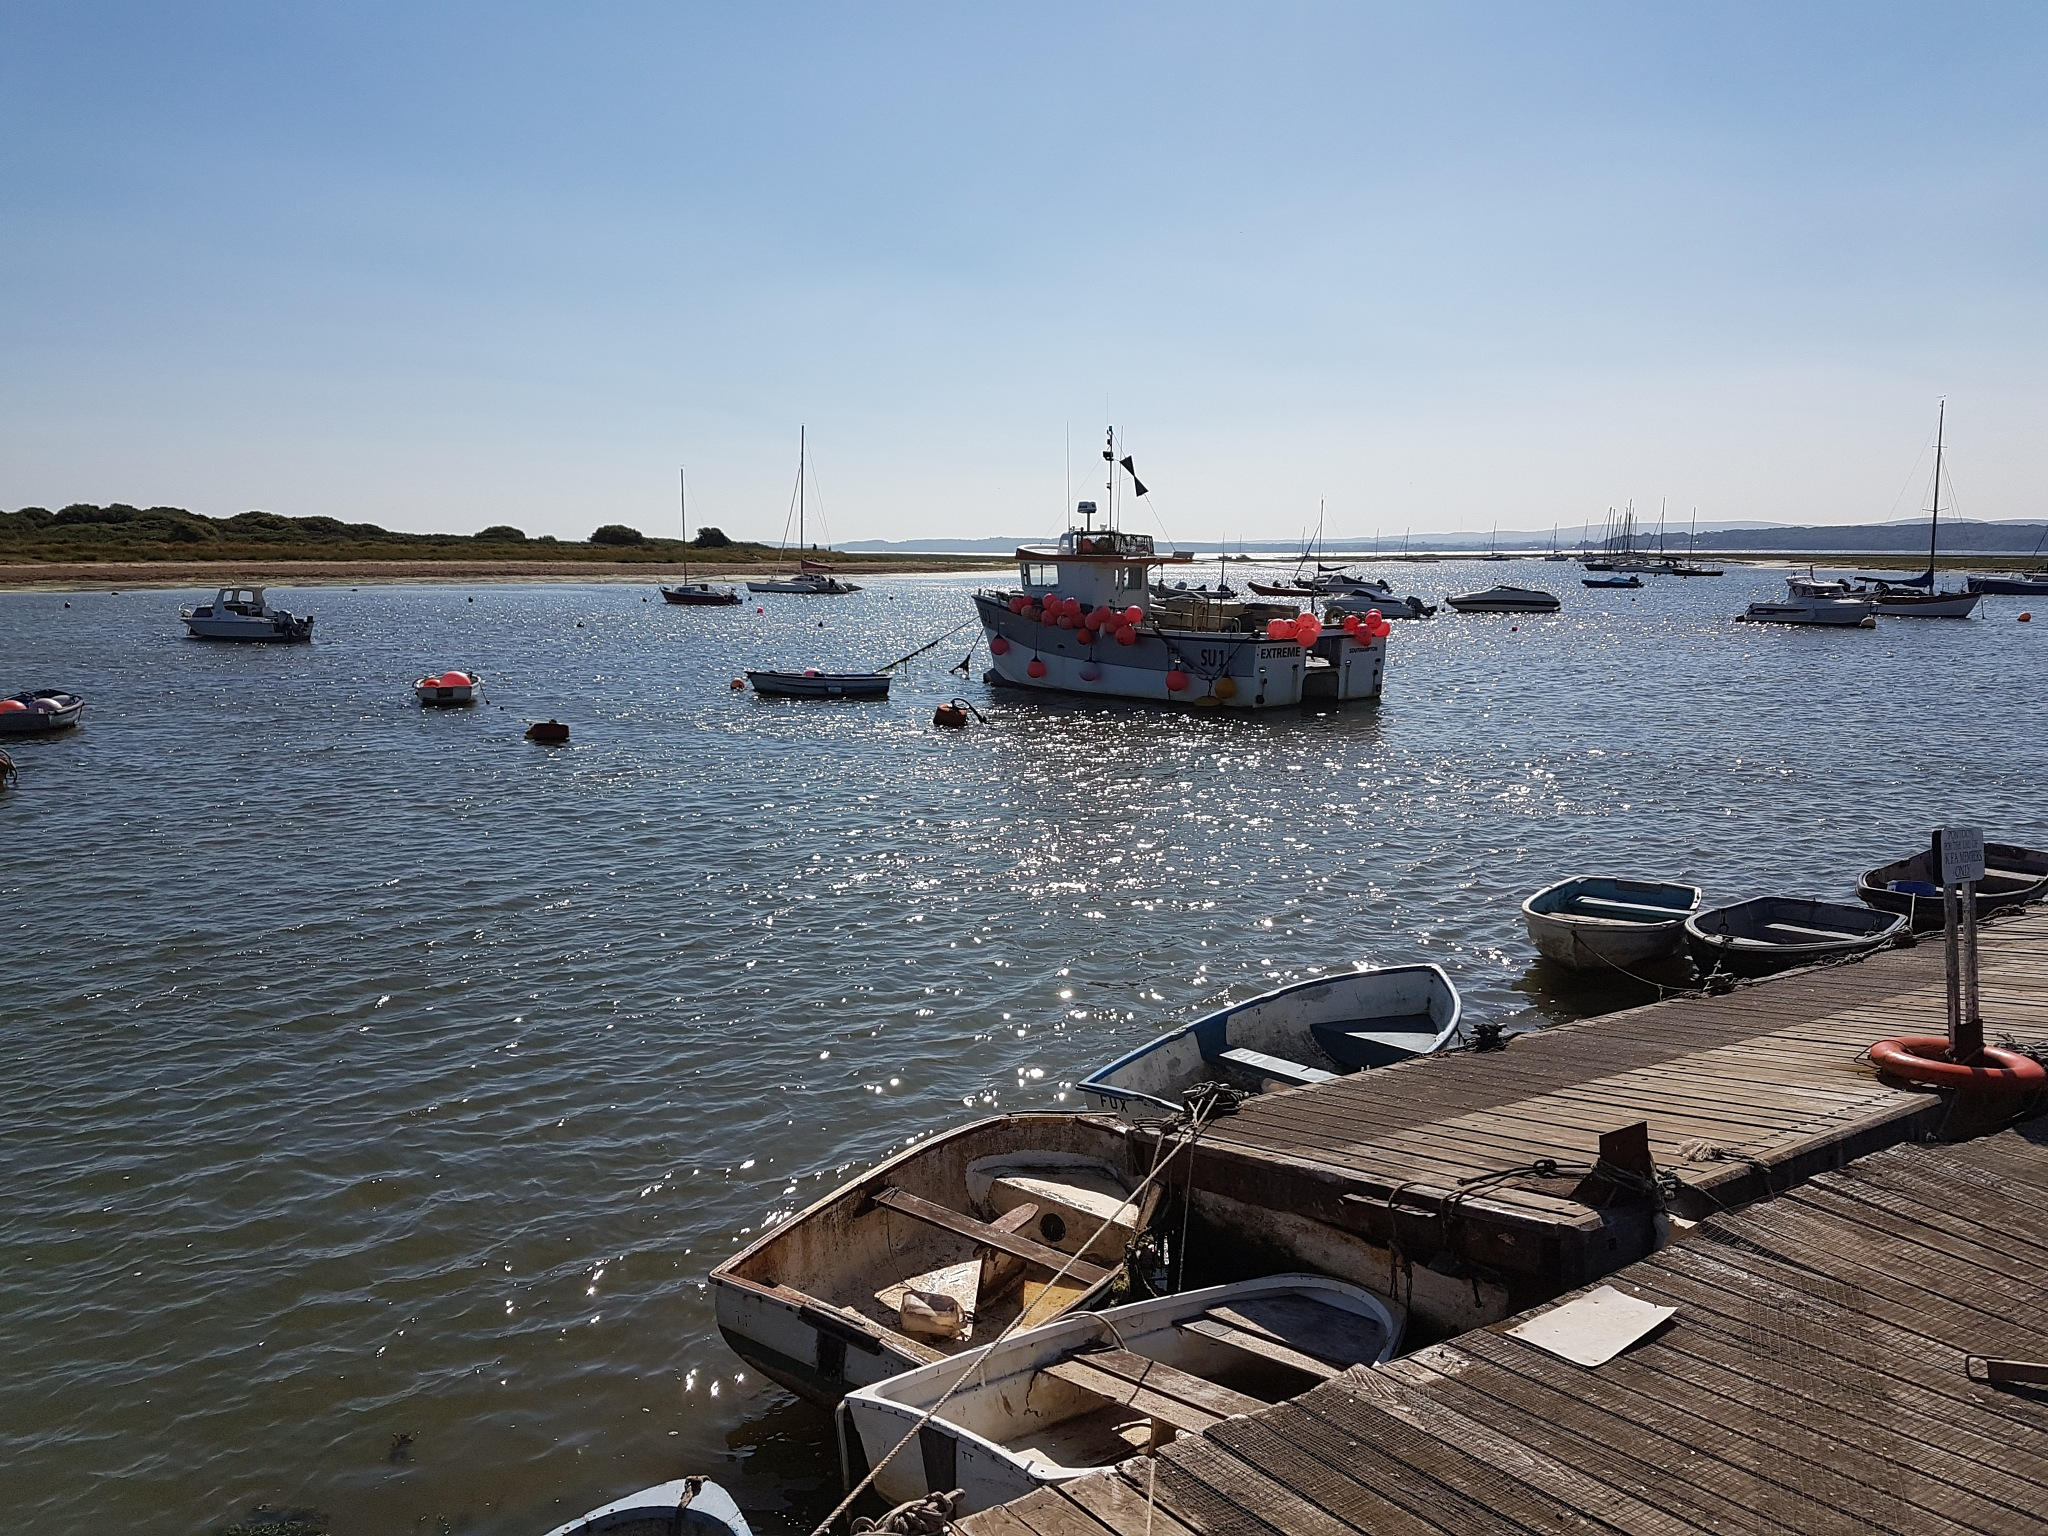 Keyhaven. by DonaldCusack